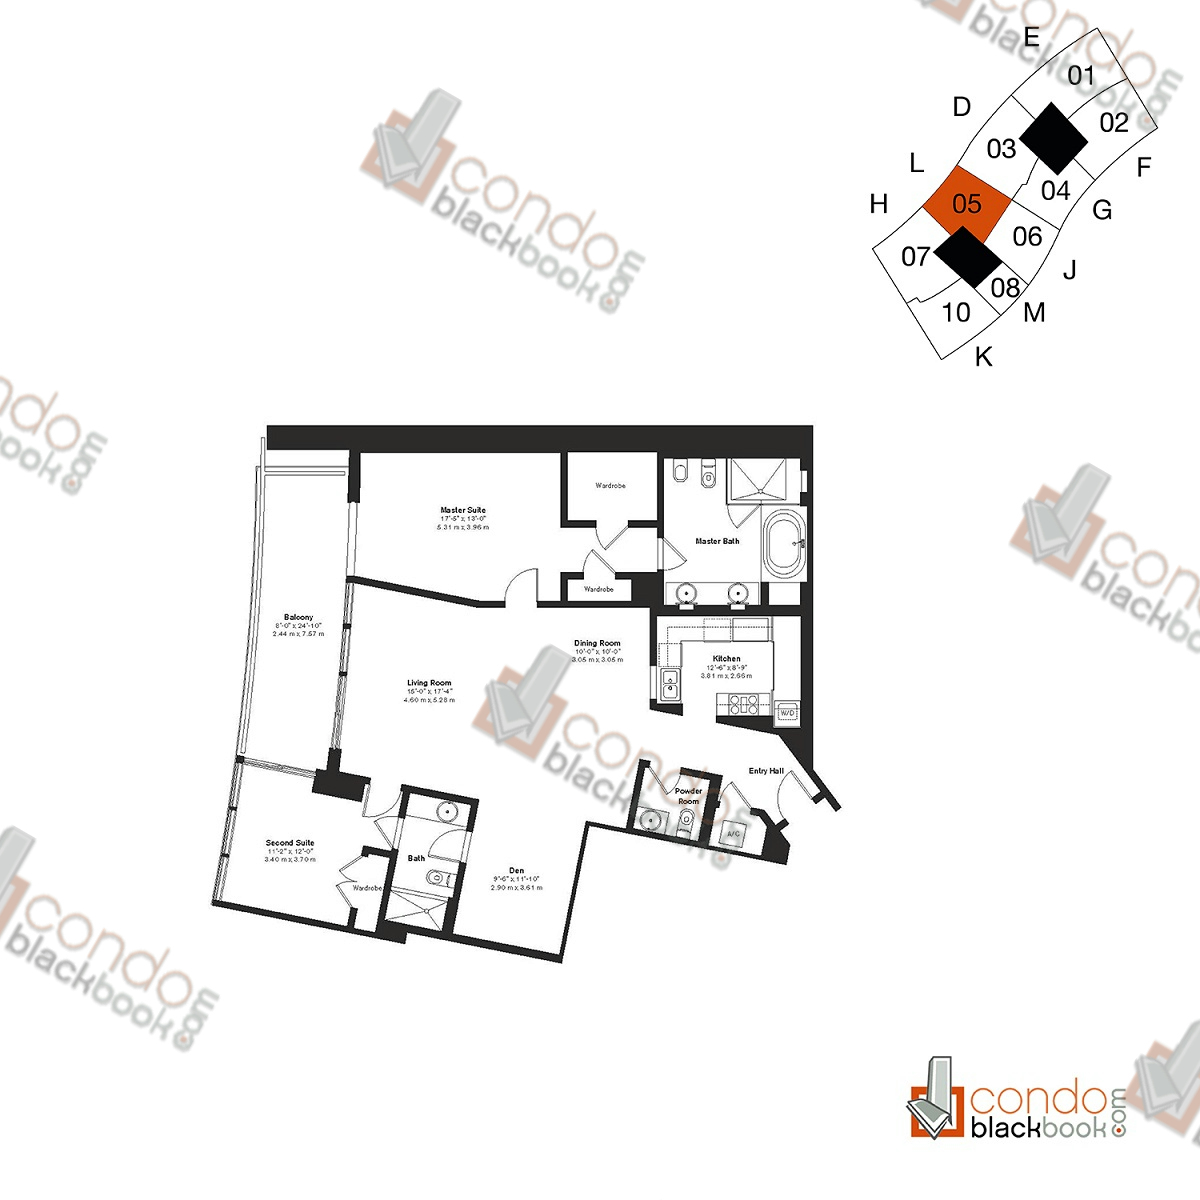 Floor plan for ICON South Beach South Beach Miami Beach, model Residence L, line 05, 2/2.5 bedrooms, 1,750 sq ft